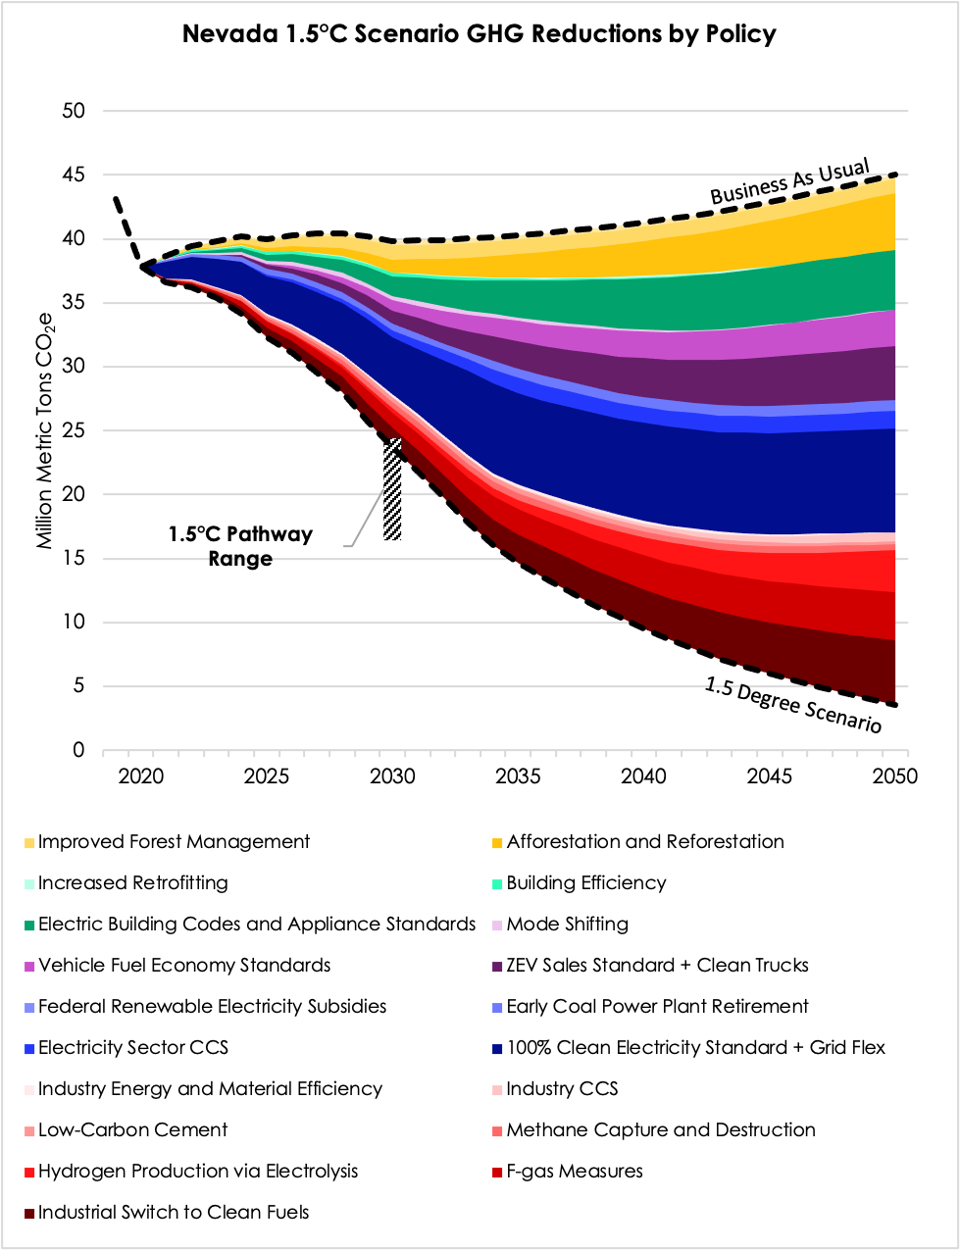 Wedge graph showing emissions reductions by policy under a 1.5°C policy pathway scenario for Nevada